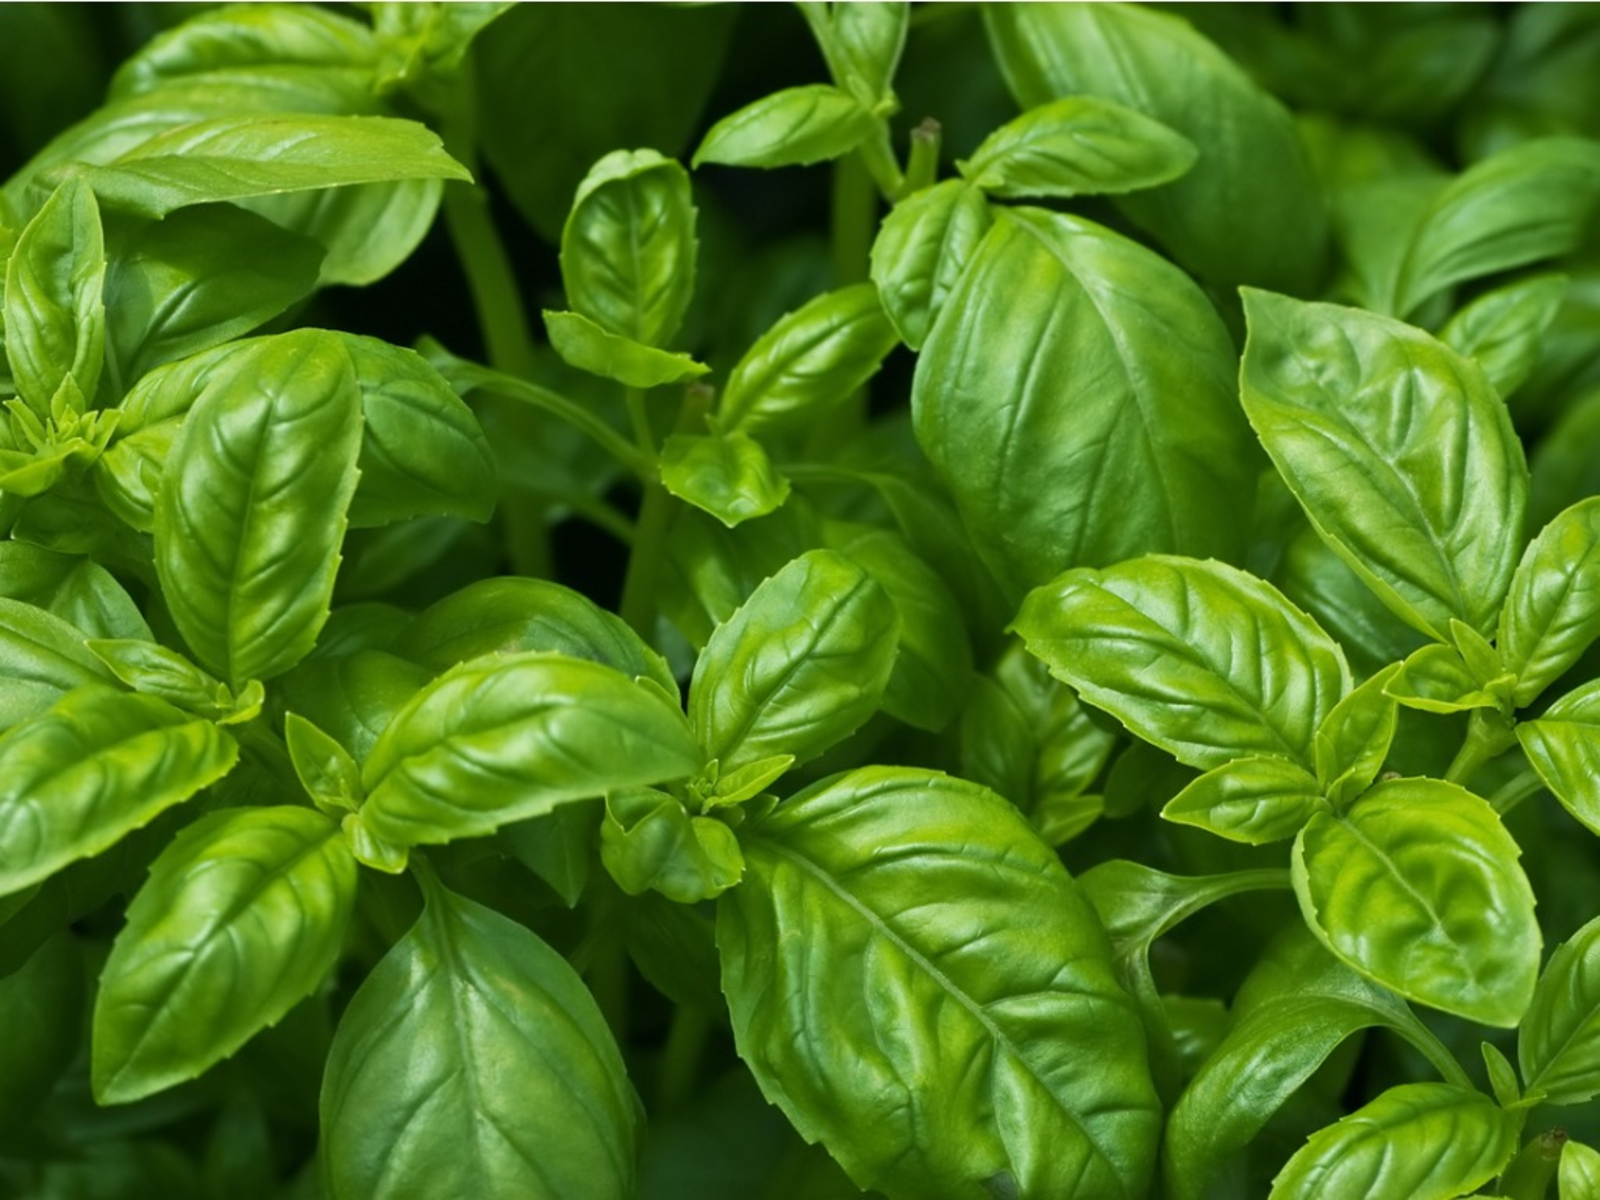 Growing Basil - How To Grow Basil Plants In Your Garden